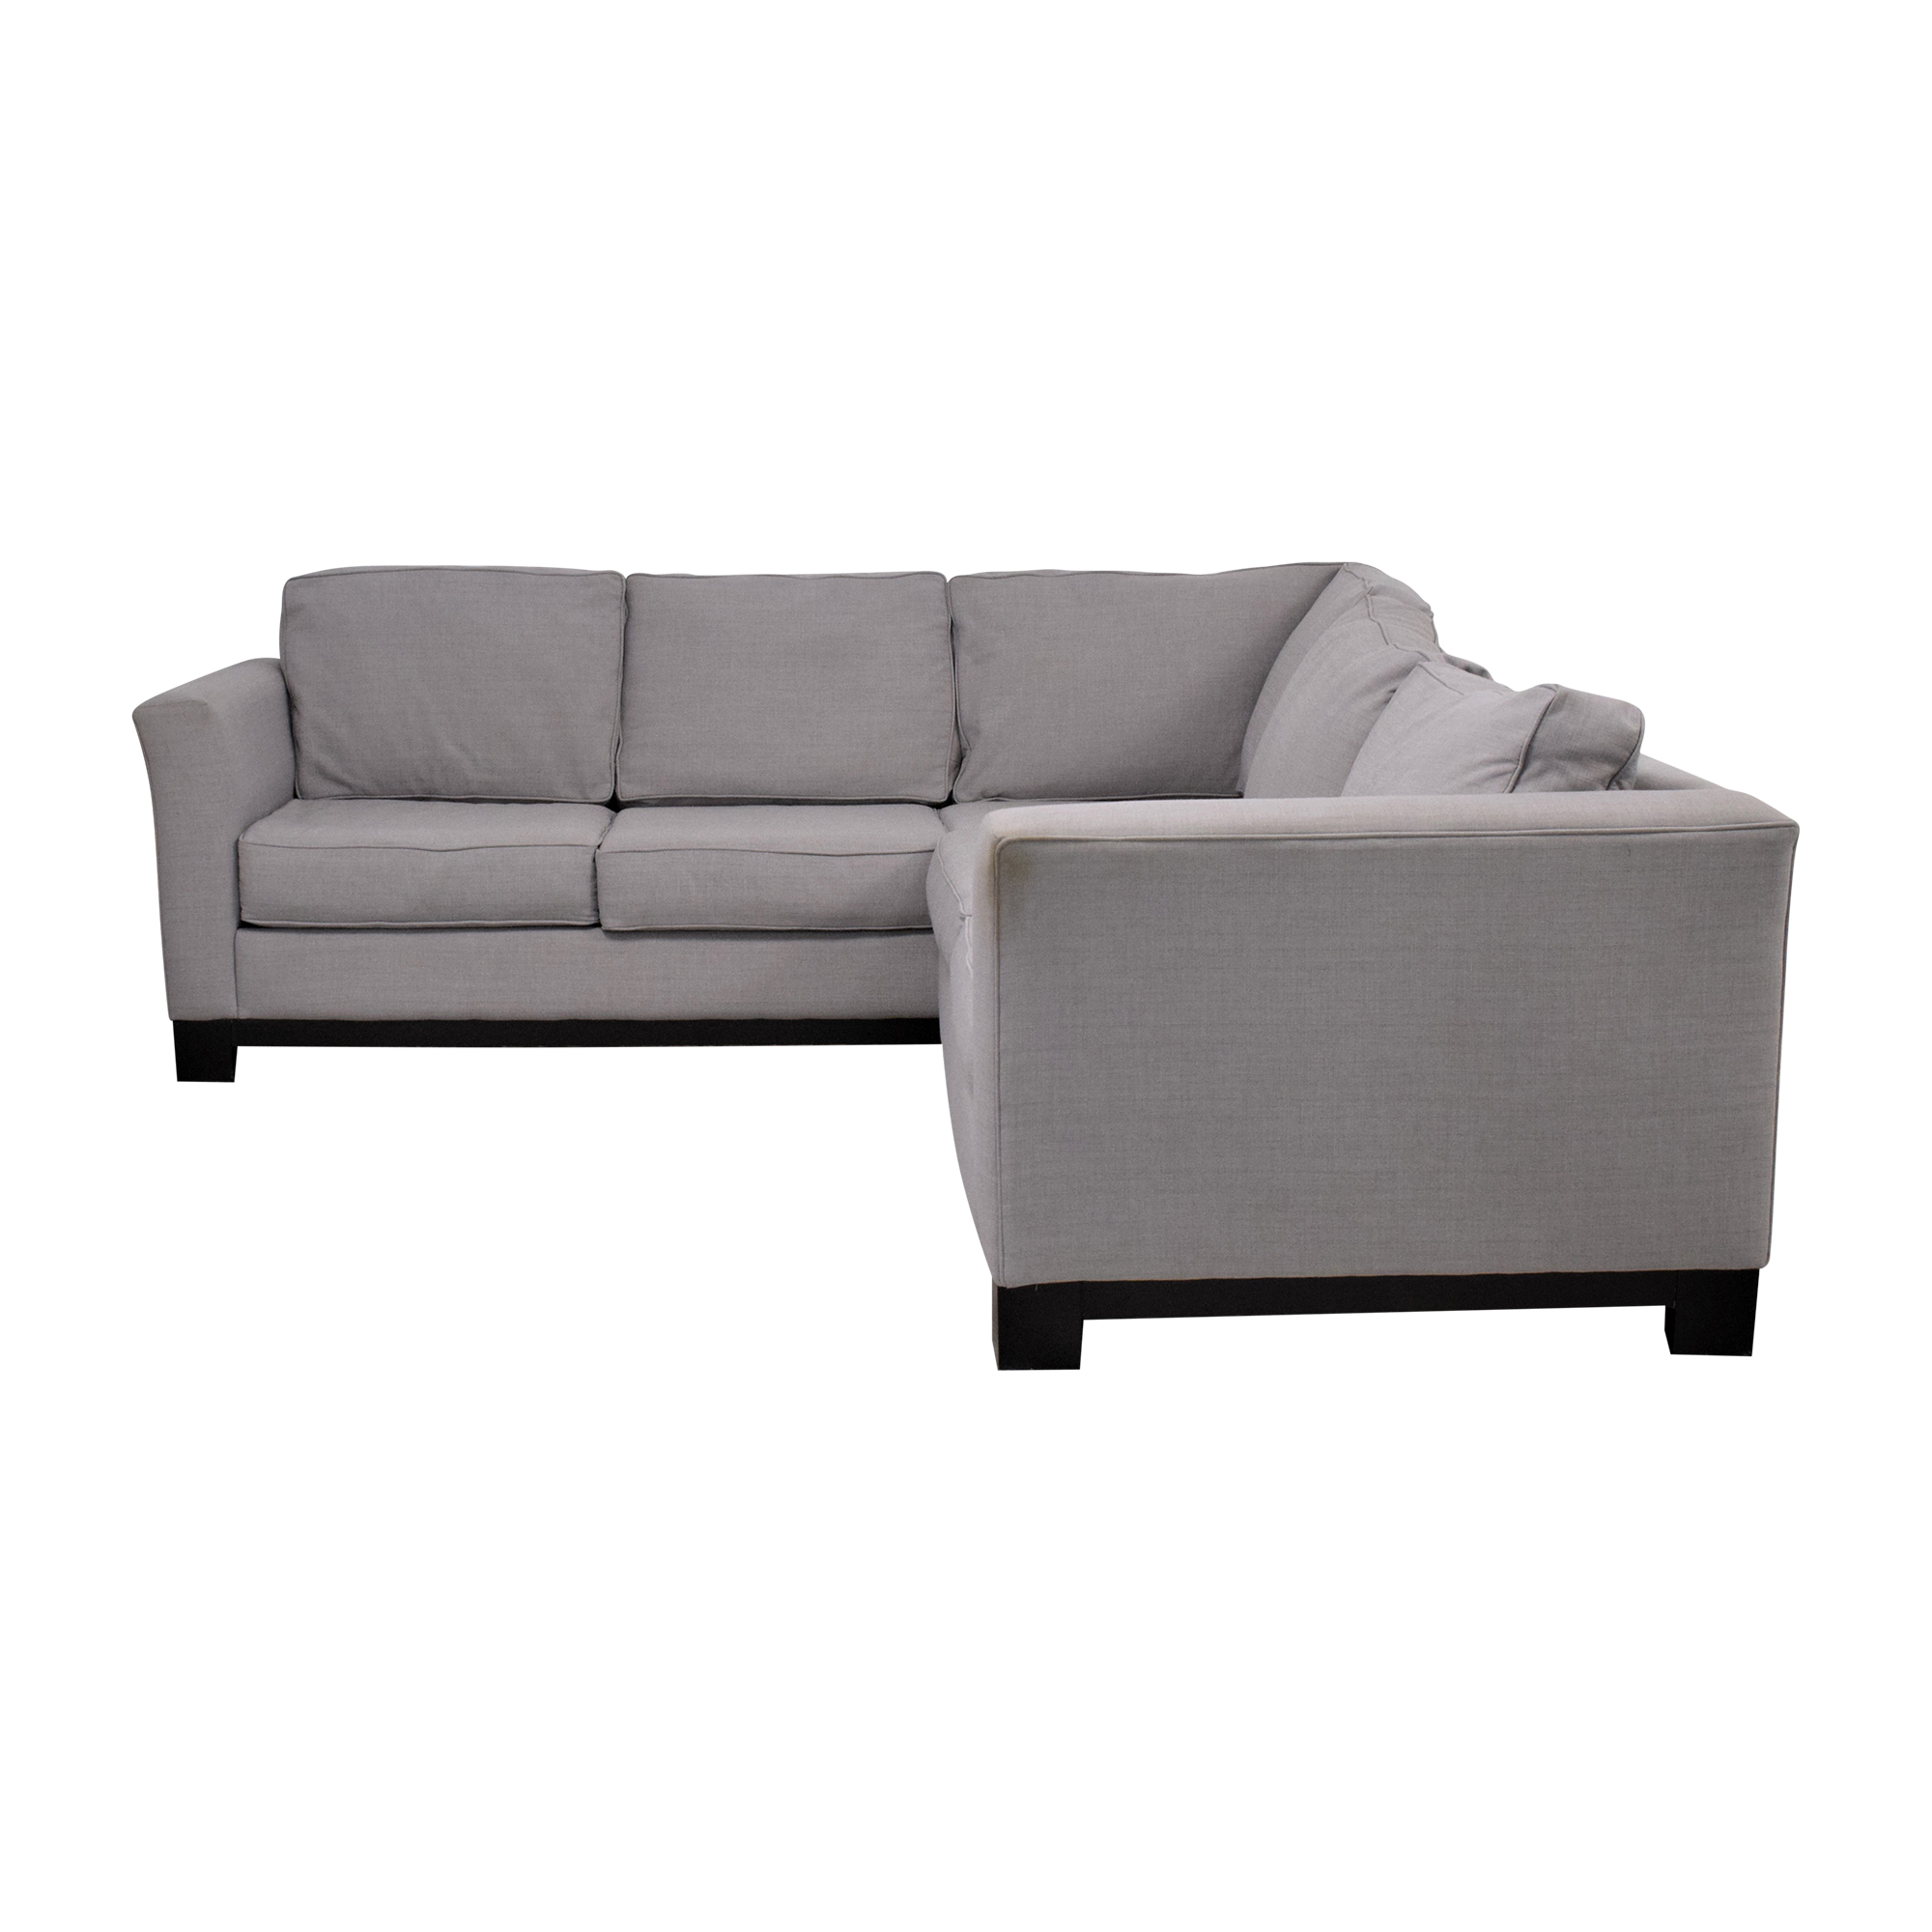 80 off macy s macy s elliot 2pc sleeper sofa sectional sofas